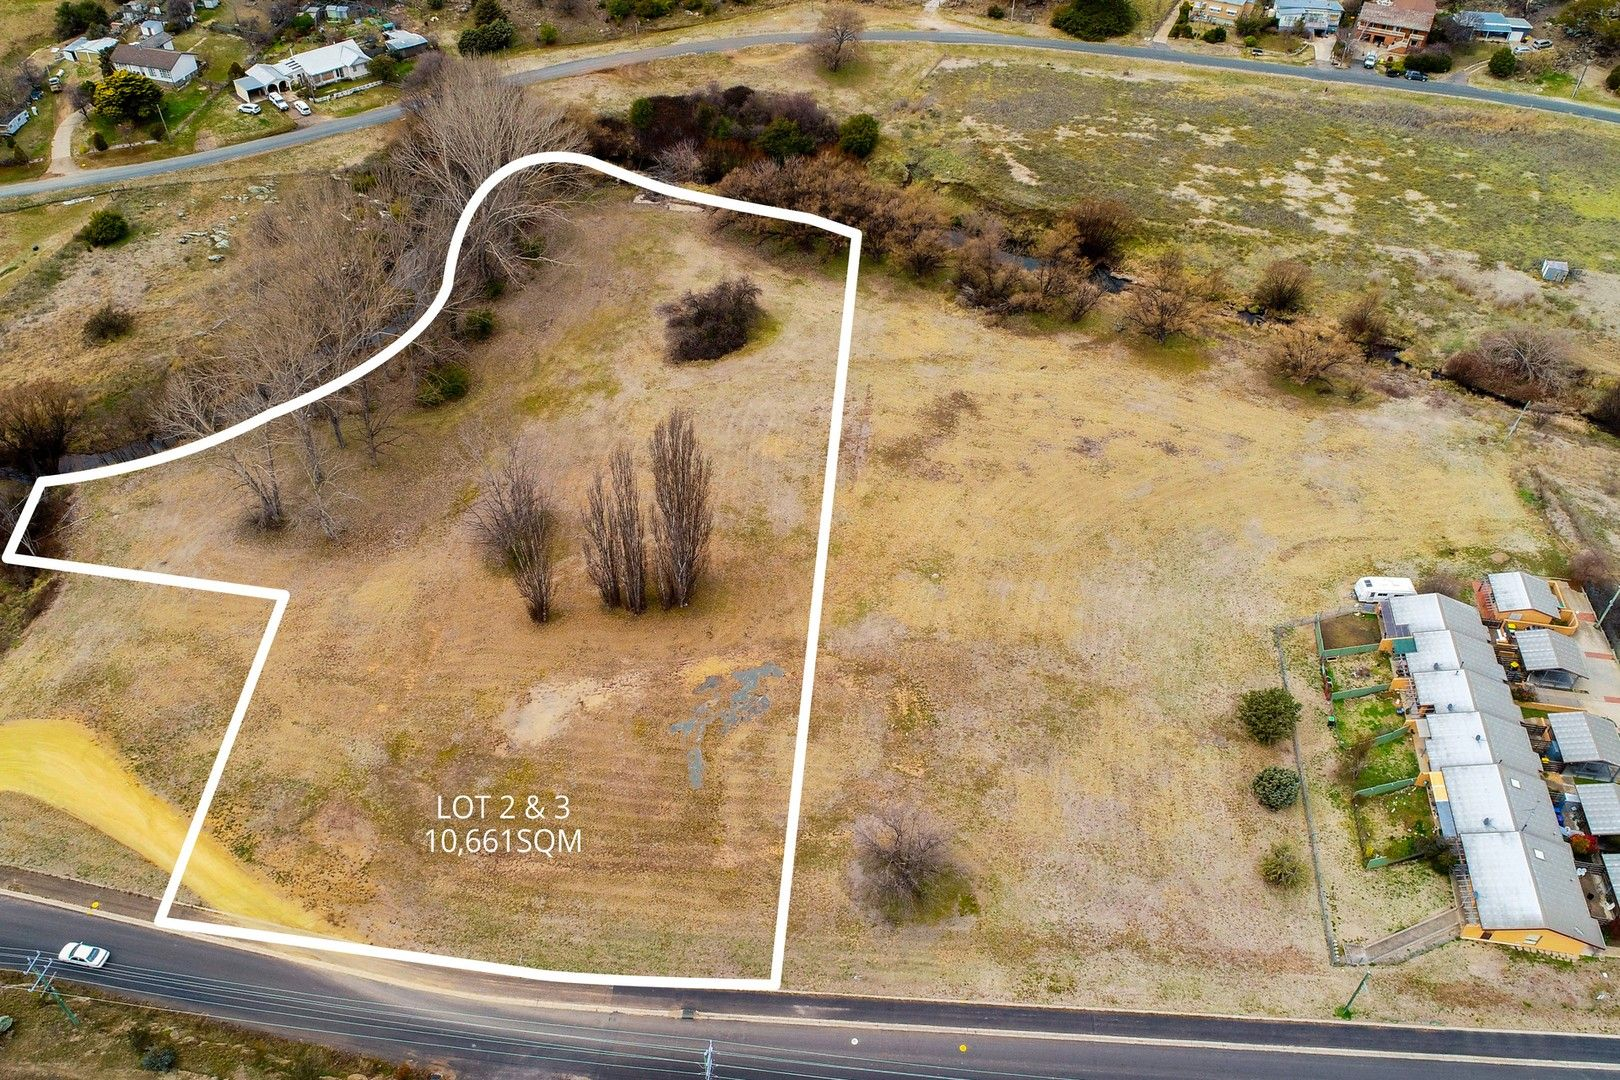 Lots 2 & 3 Dp 537242 Mulach Street, Cooma NSW 2630, Image 0